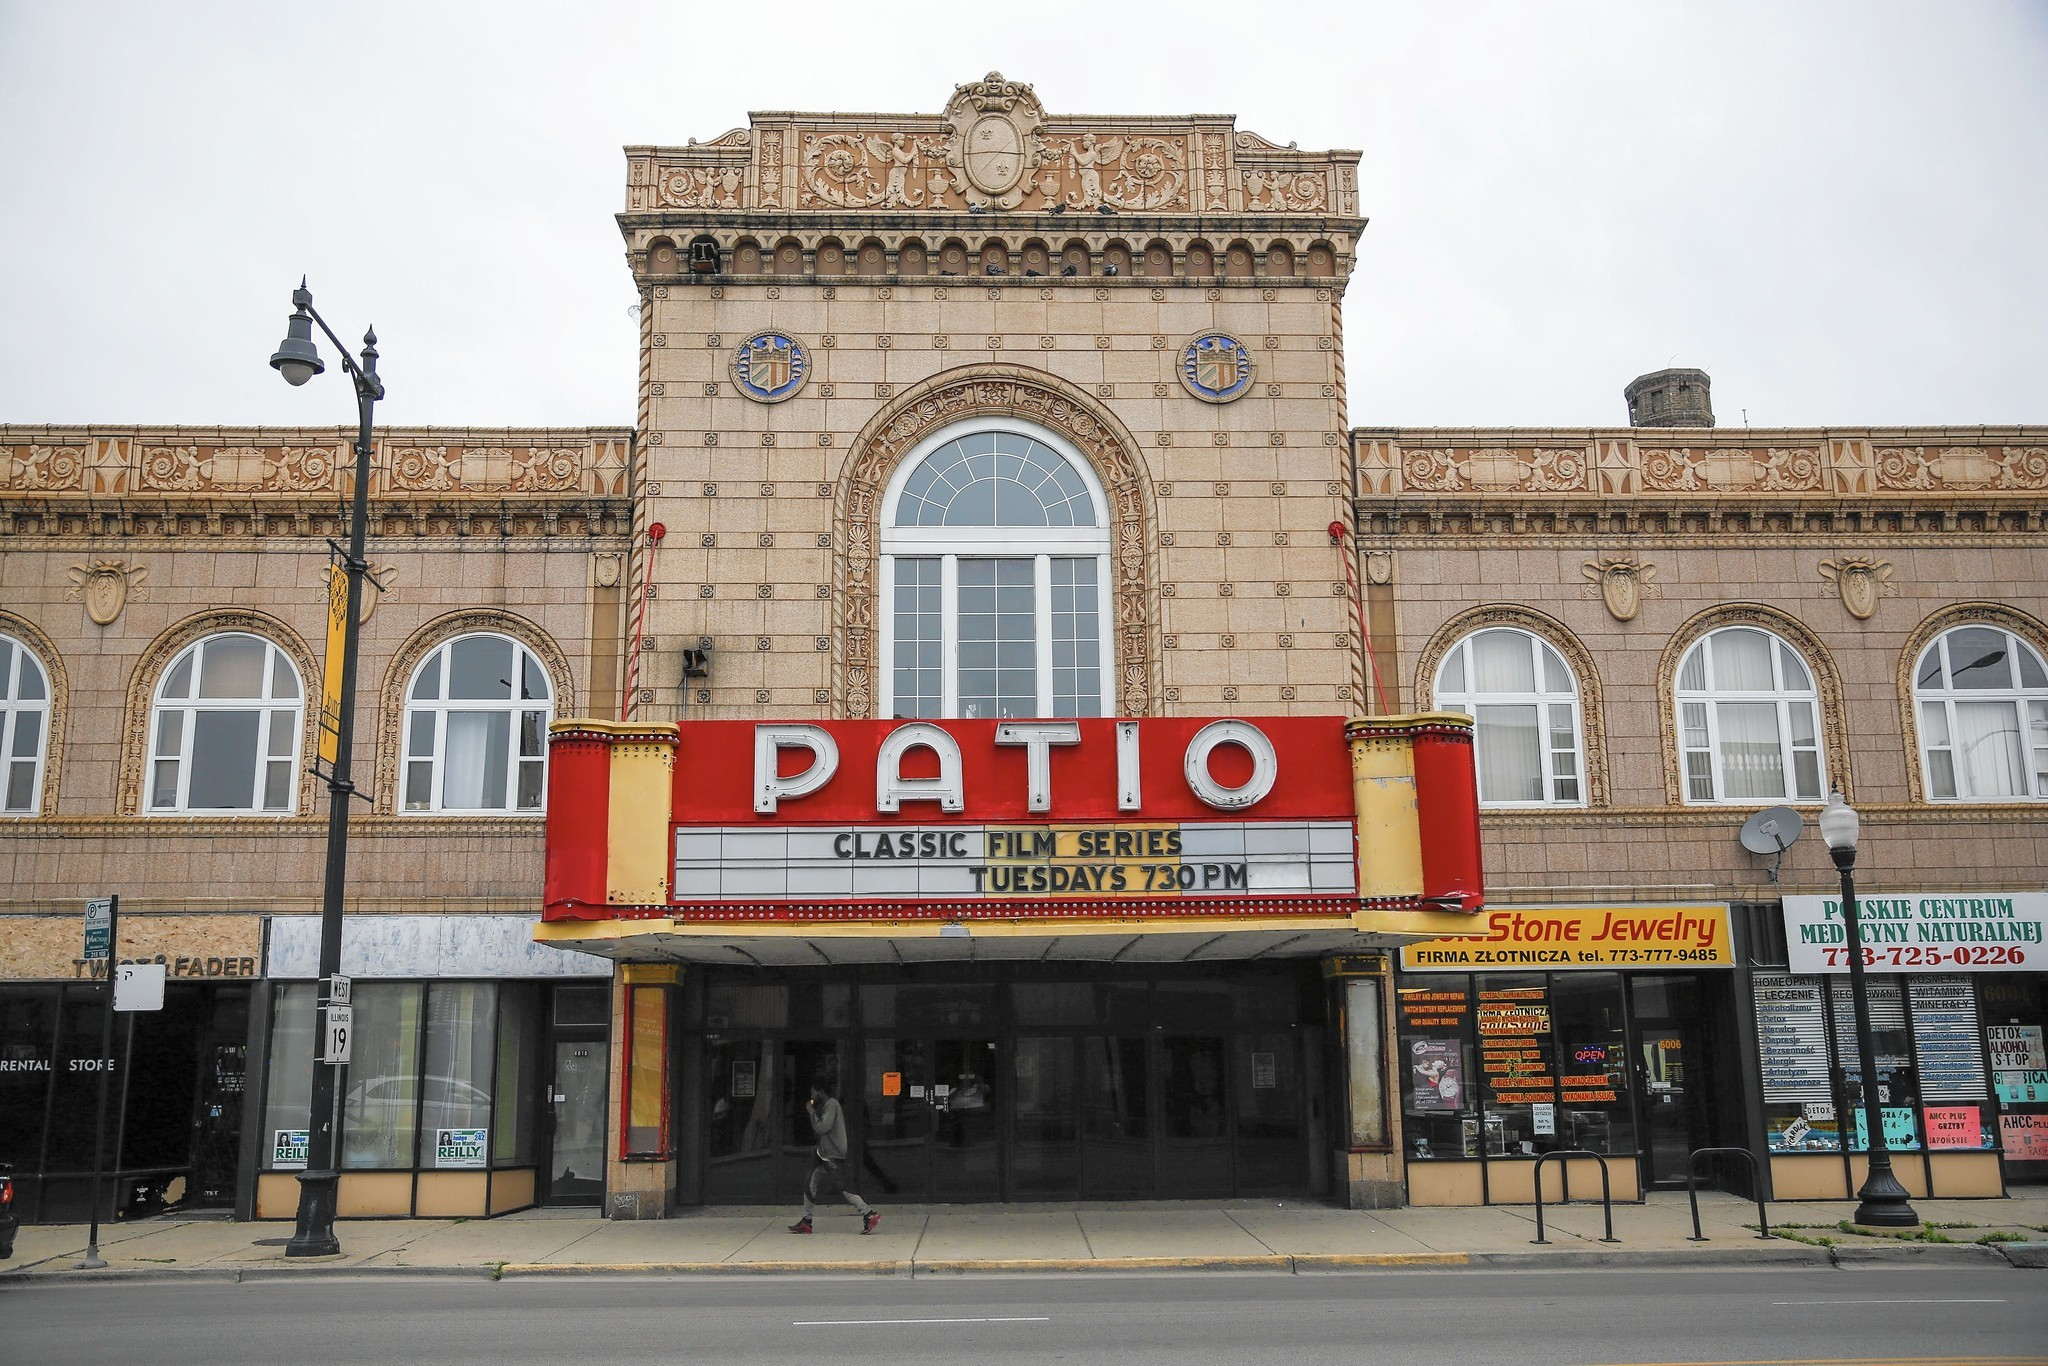 Captivating Residents Wary As Patio Theater Operators Seek Liquor License   Chicago  Tribune